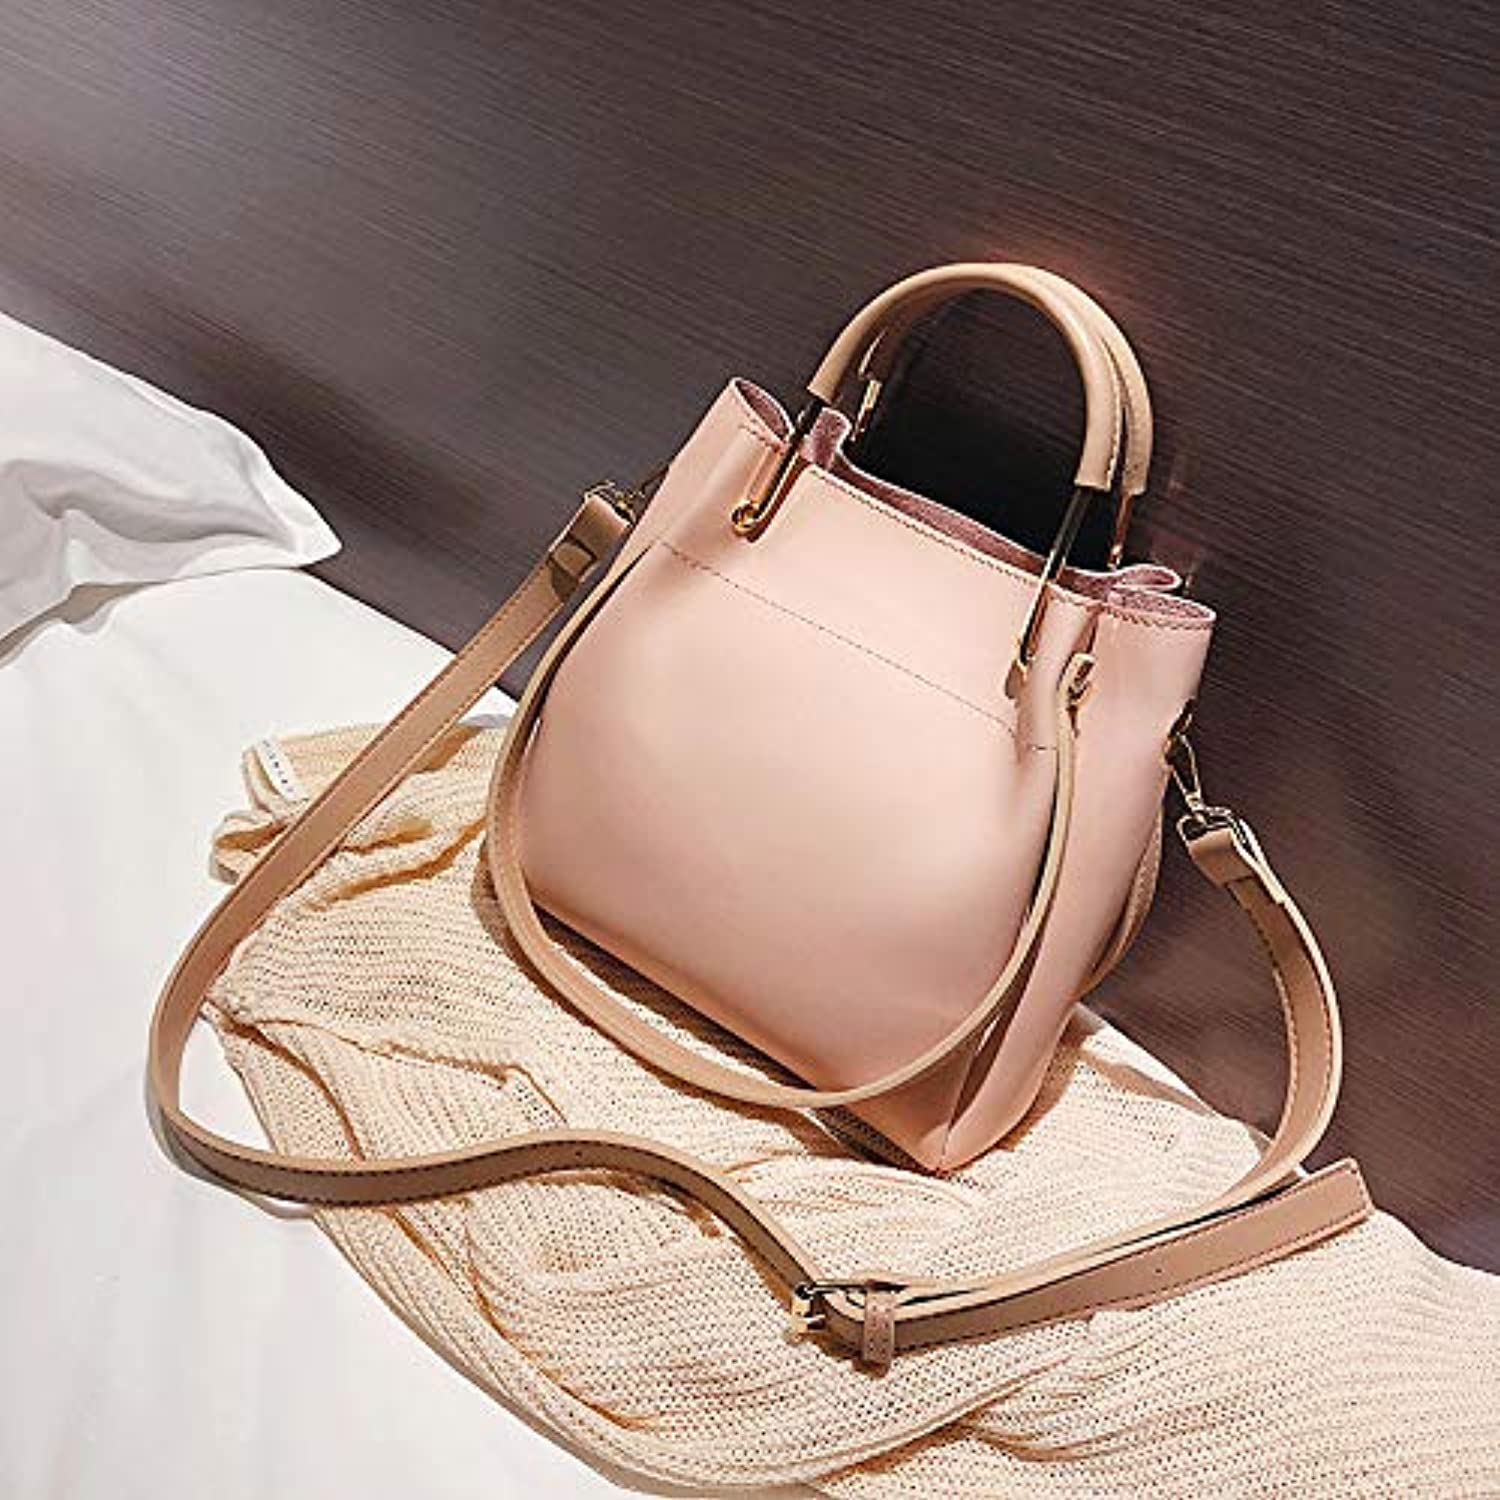 WANGZHAO Casual Soft Leather Handbag color Single Shoulder Bag